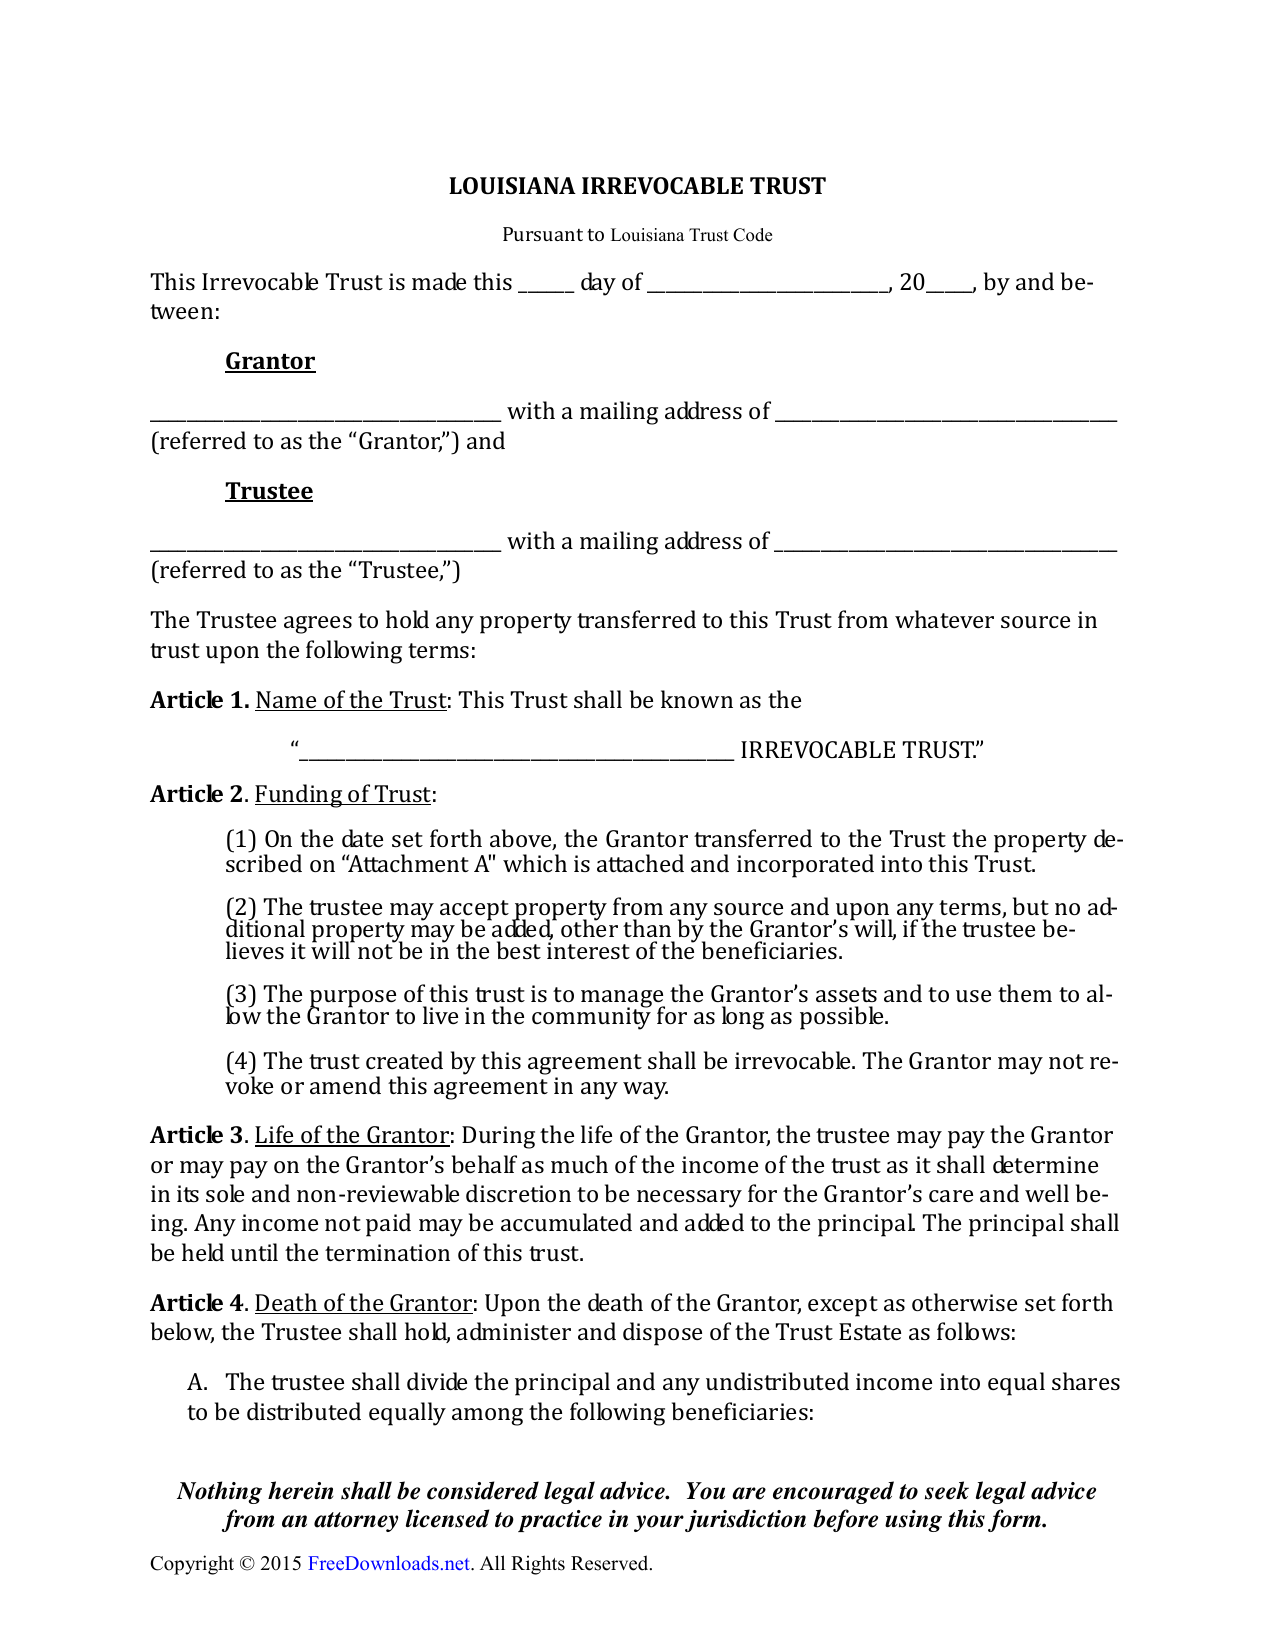 Louisiana Irrevocable Living Trust Form